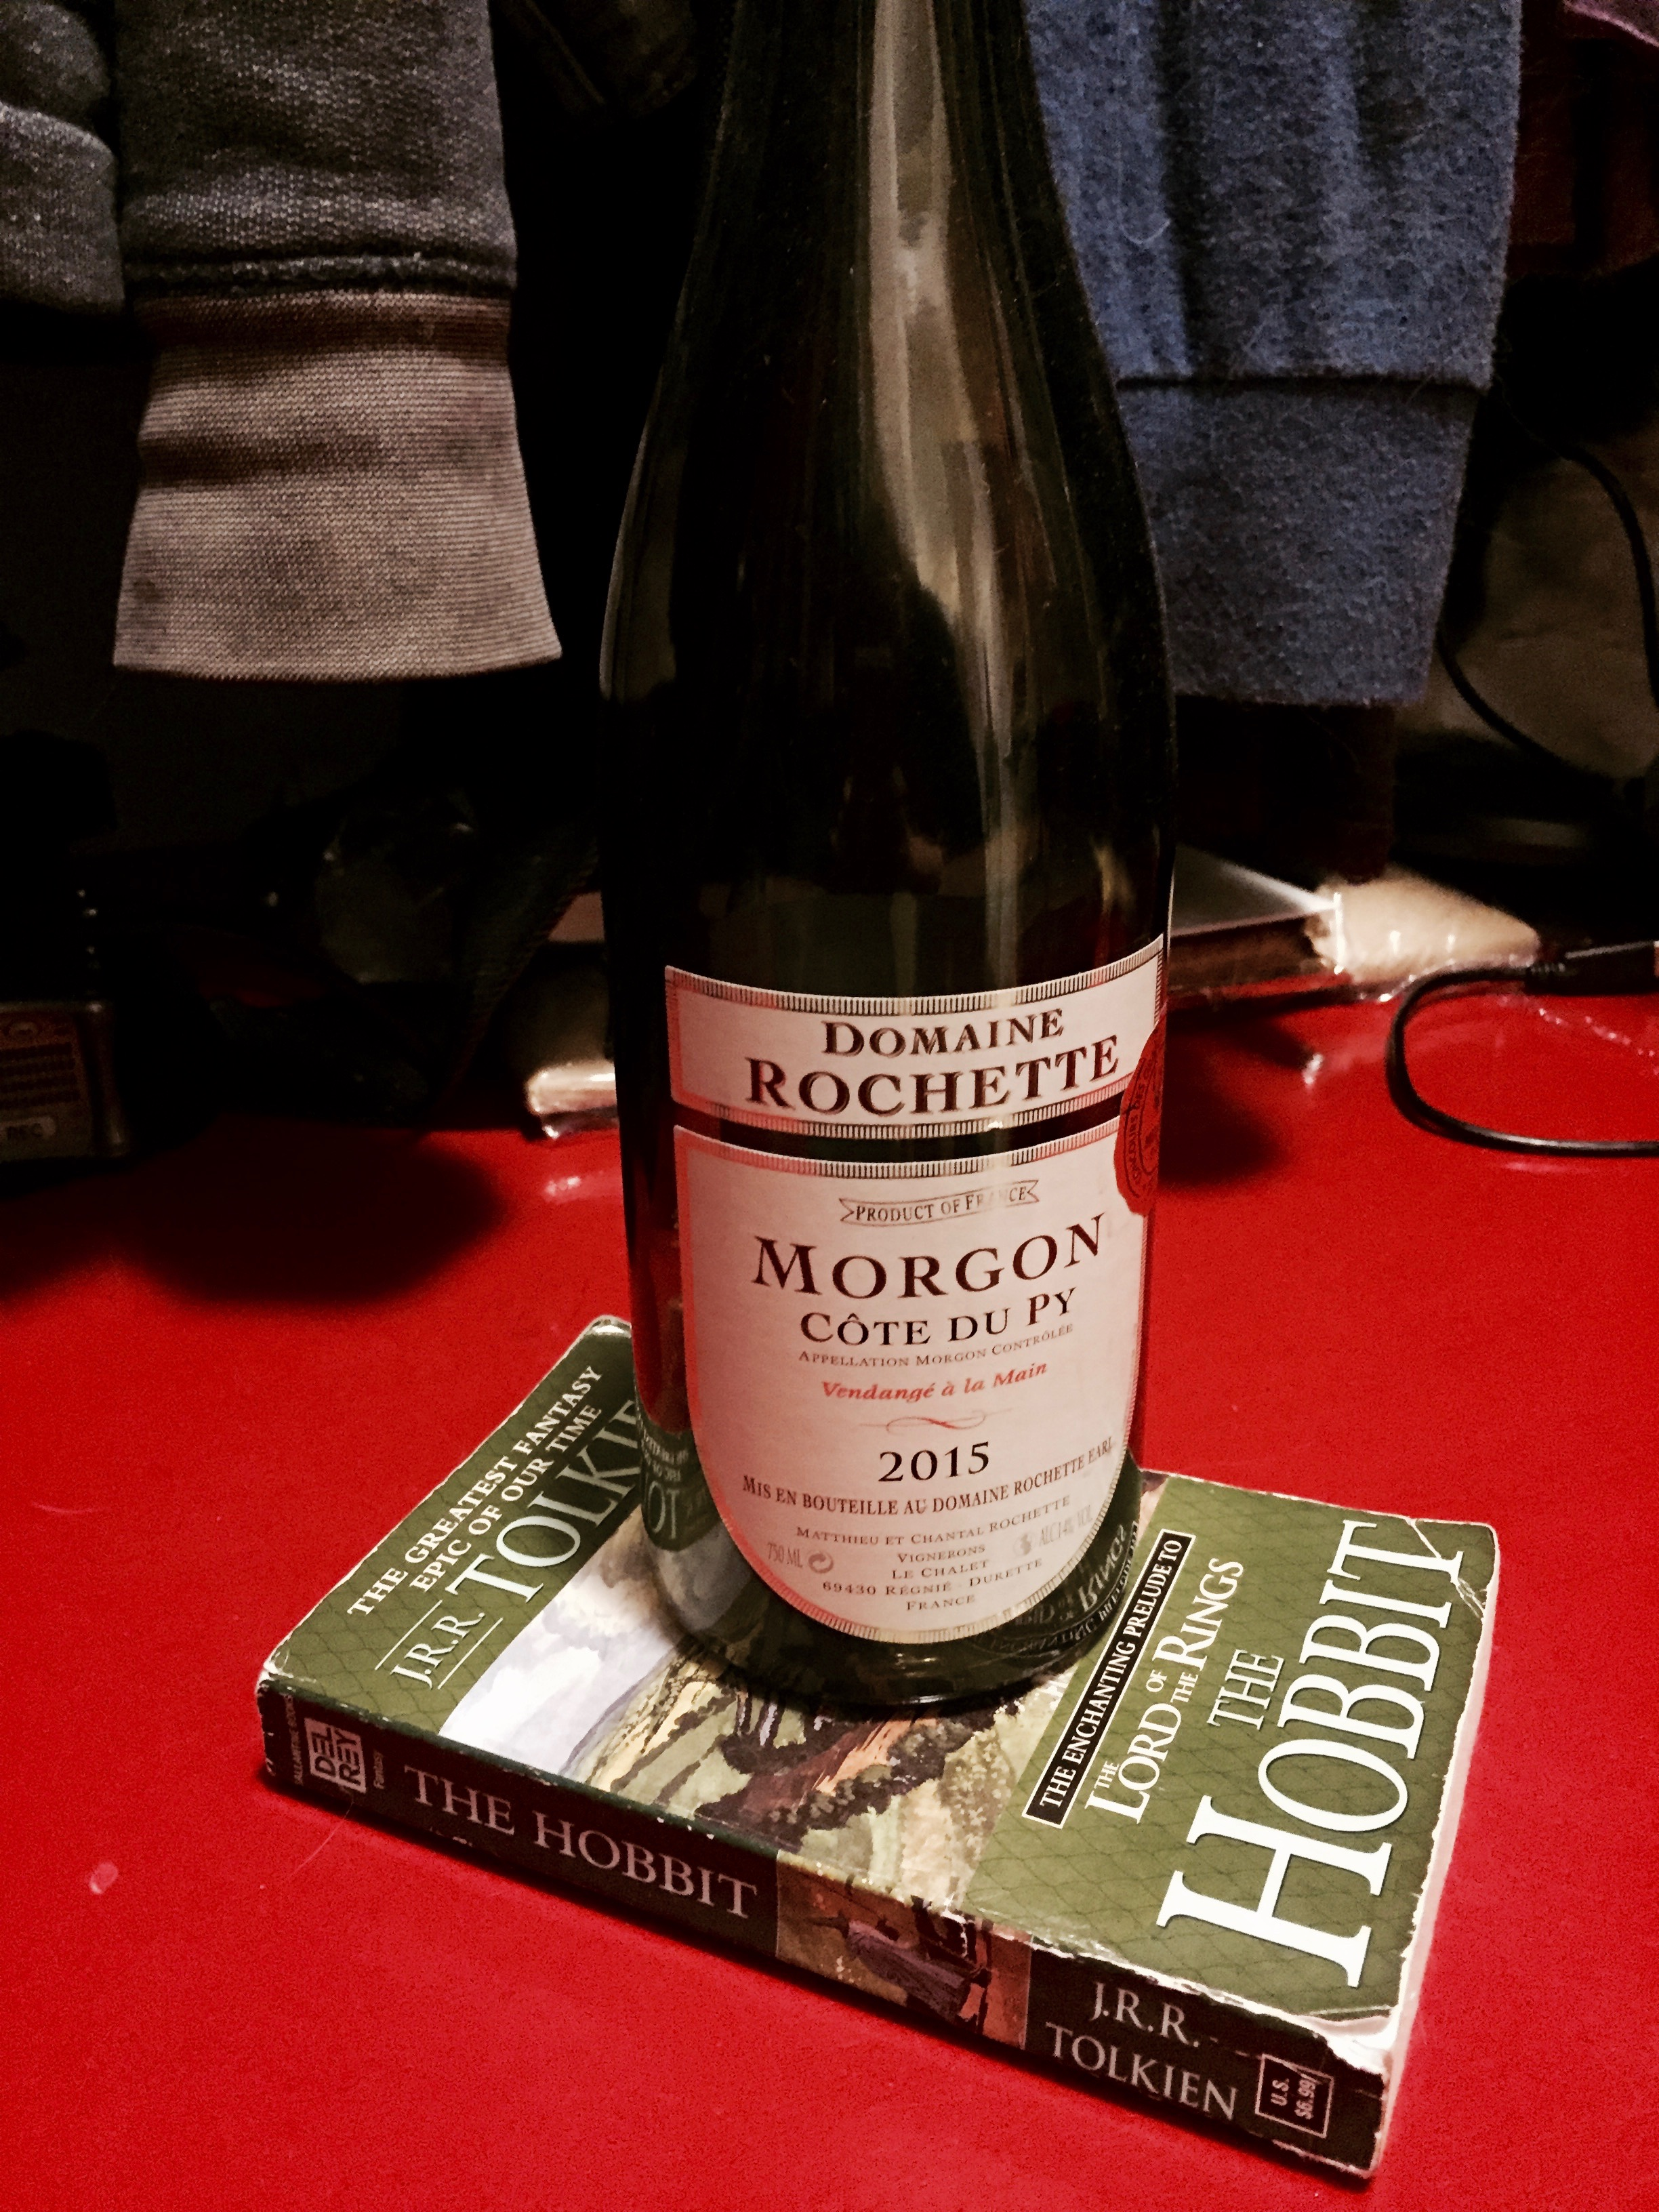 The Hobbit  and 2015 Domaine Rochette Morgon Côte du Py